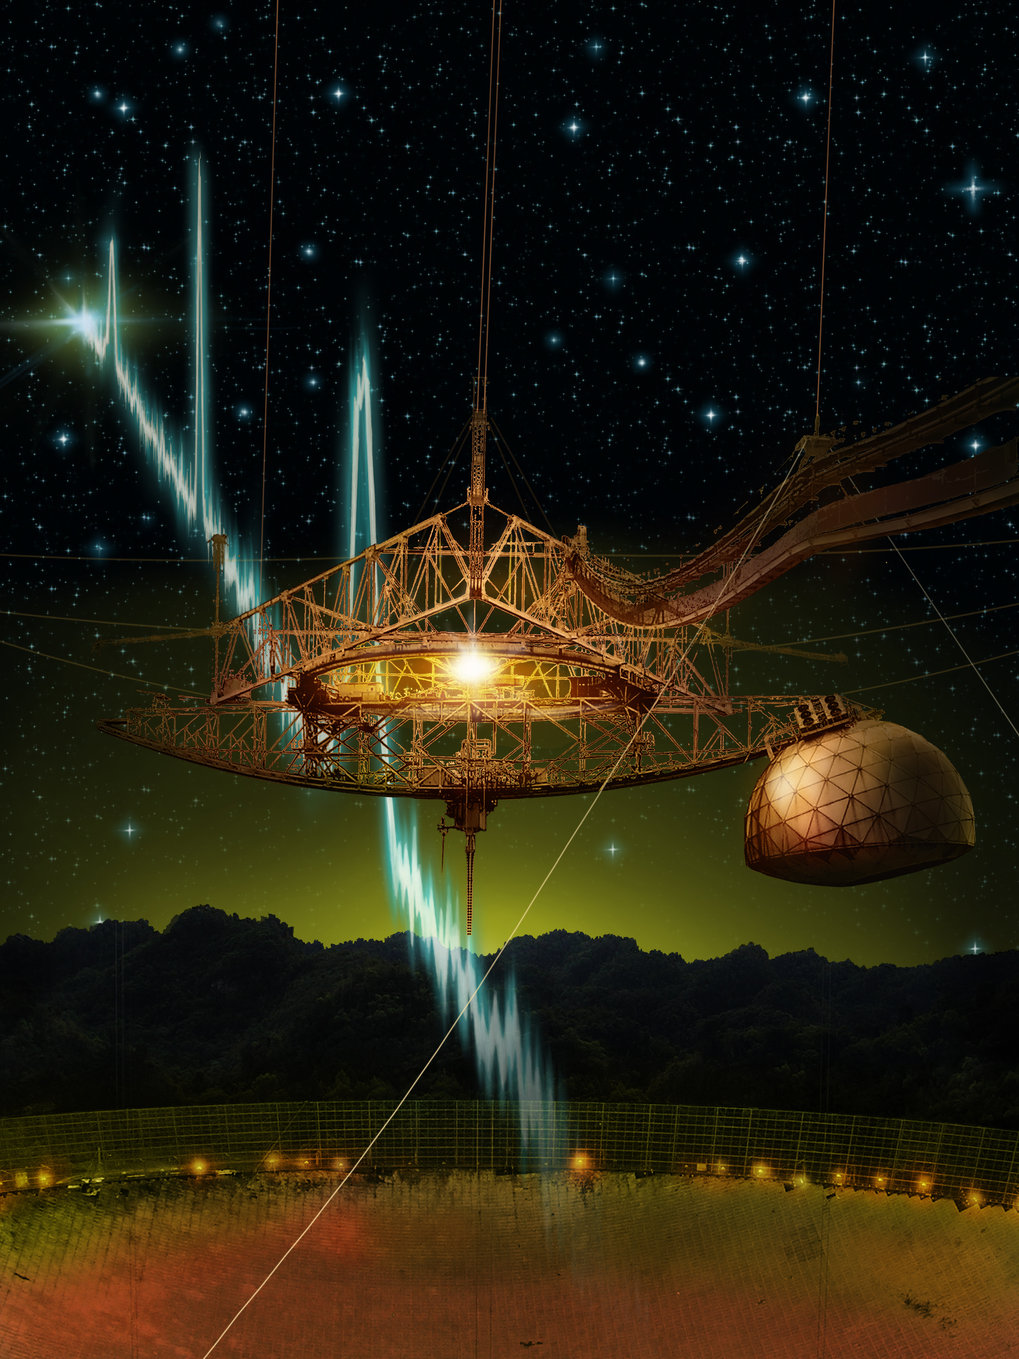 The 305-m Arecibo telescope and its suspended support platform of radio receivers is shown amid a starry night.  From space, a sequence of millisecond-duration radio flashes are racing towards the dish, where they will be reflected and detected by the radio receivers.  Such radio signals are called fast radio bursts, and Arecibo is the first telescope to see repeat bursts from the same source.